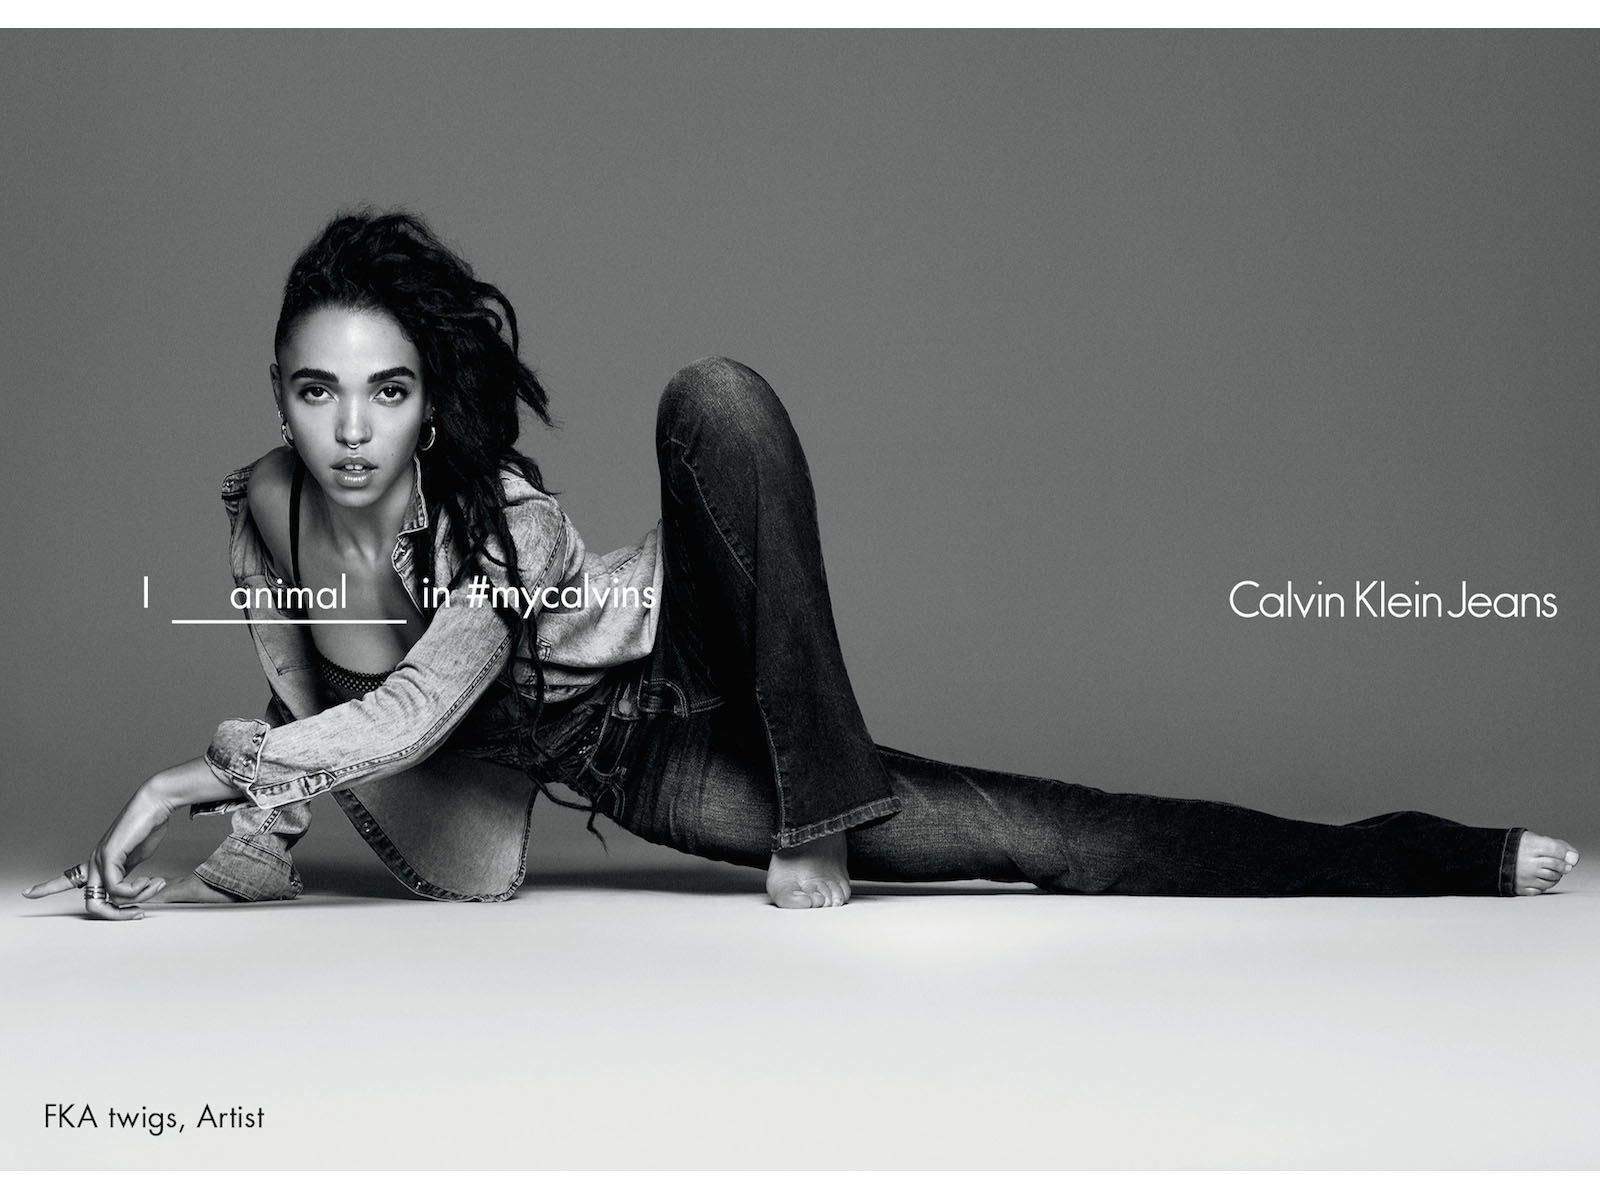 FKA TWIGS for CALVIN KLEIN